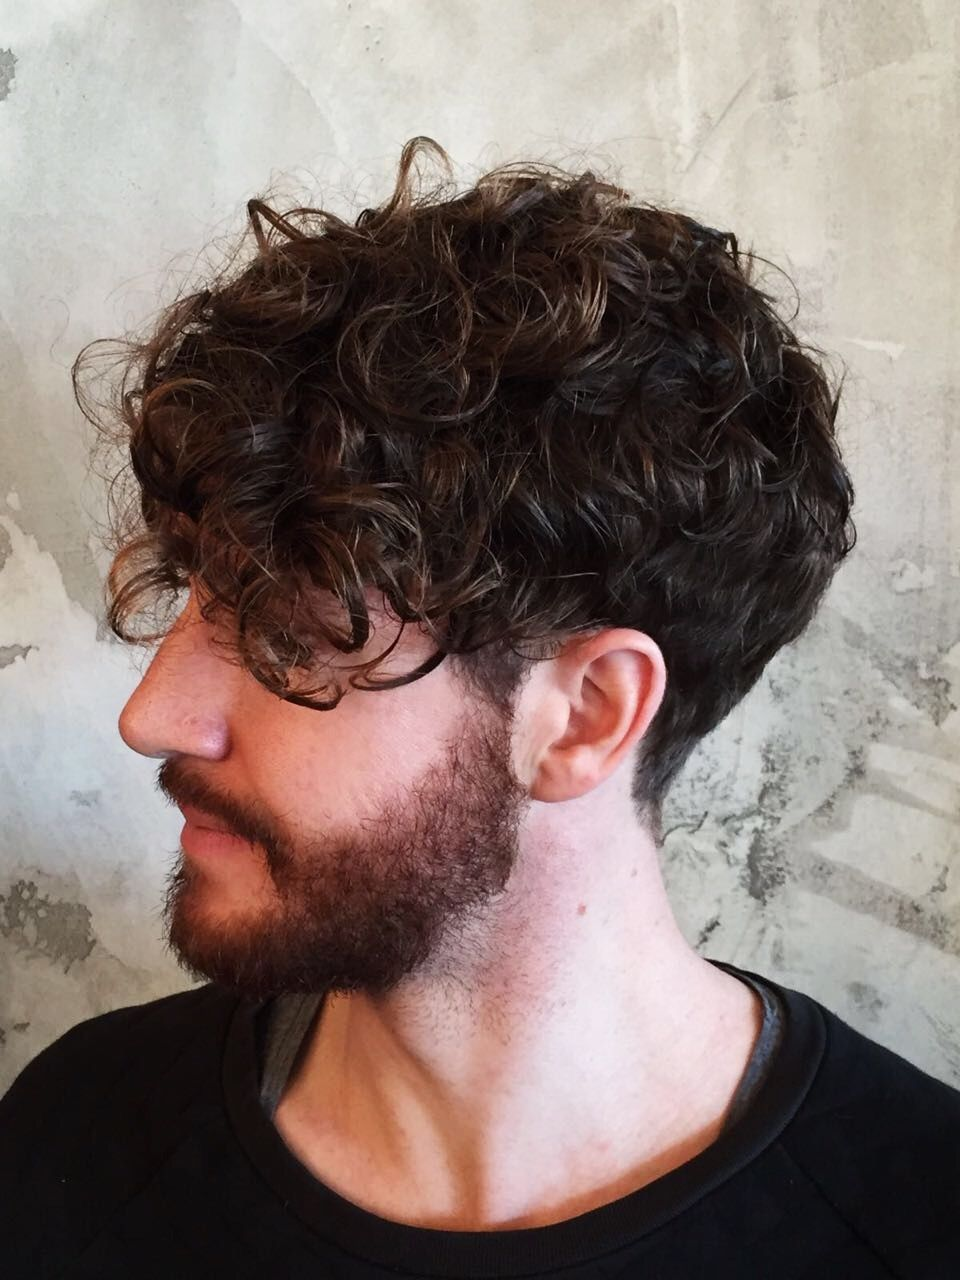 Tousled Top Men S Haircut And Hairstyle London Hairdresser For More Hairstyles And Our List Of Hair S London Hair Salon Best Hair Salon Hair And Beauty Salon